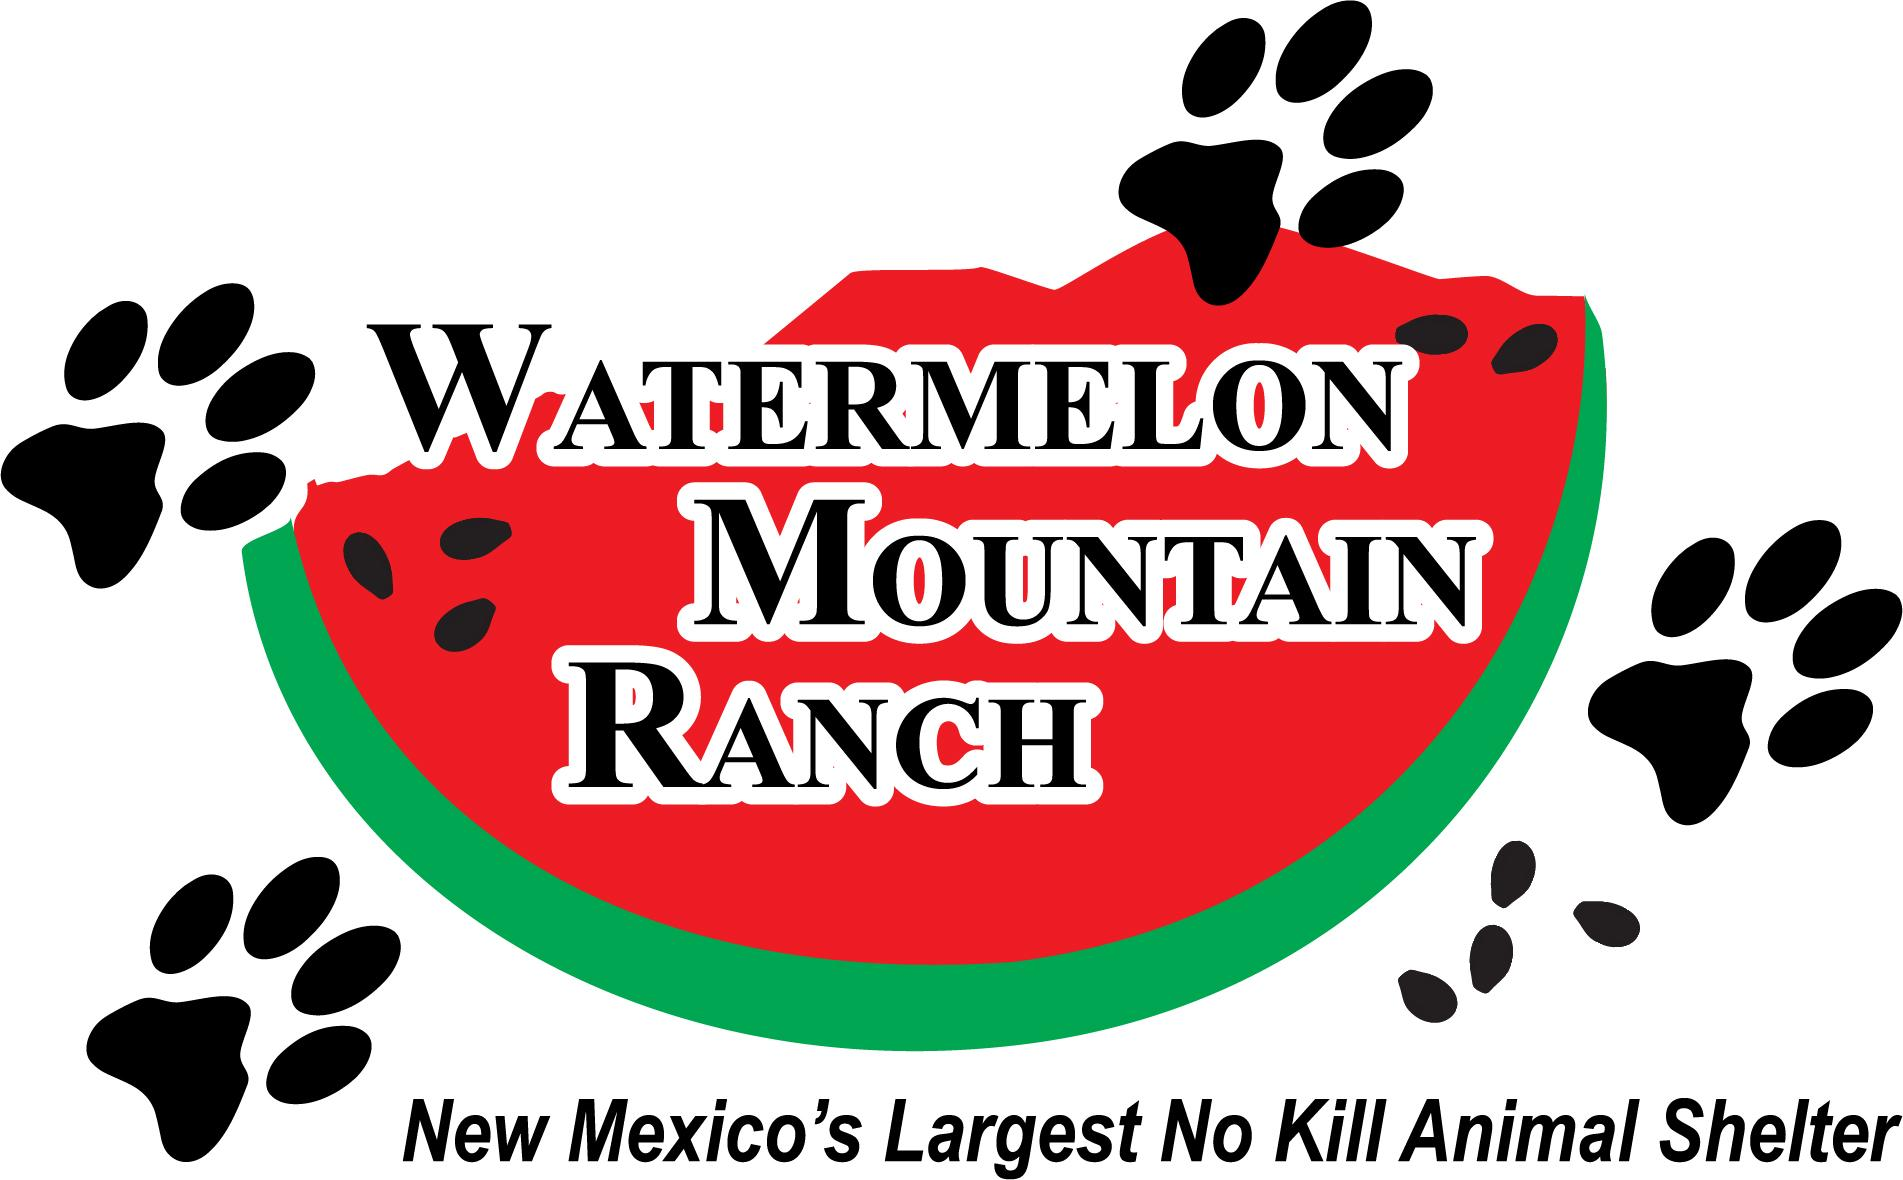 Watermelon Mountain Ranch